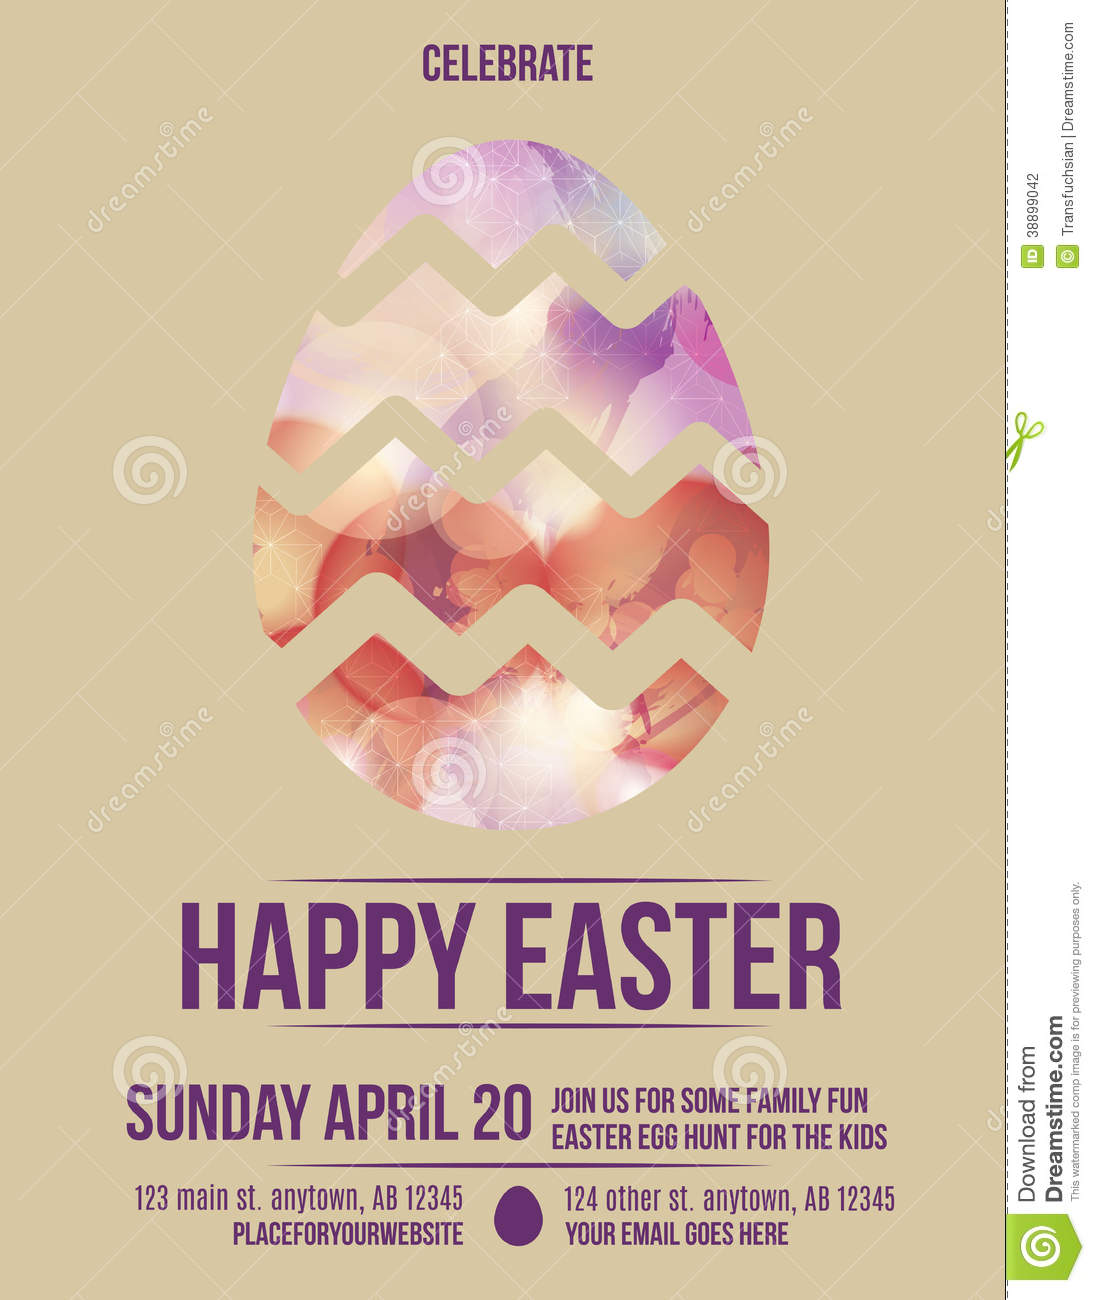 Beautiful easter egg flyer invitation stock vector illustration of beautiful easter egg flyer invitation maxwellsz